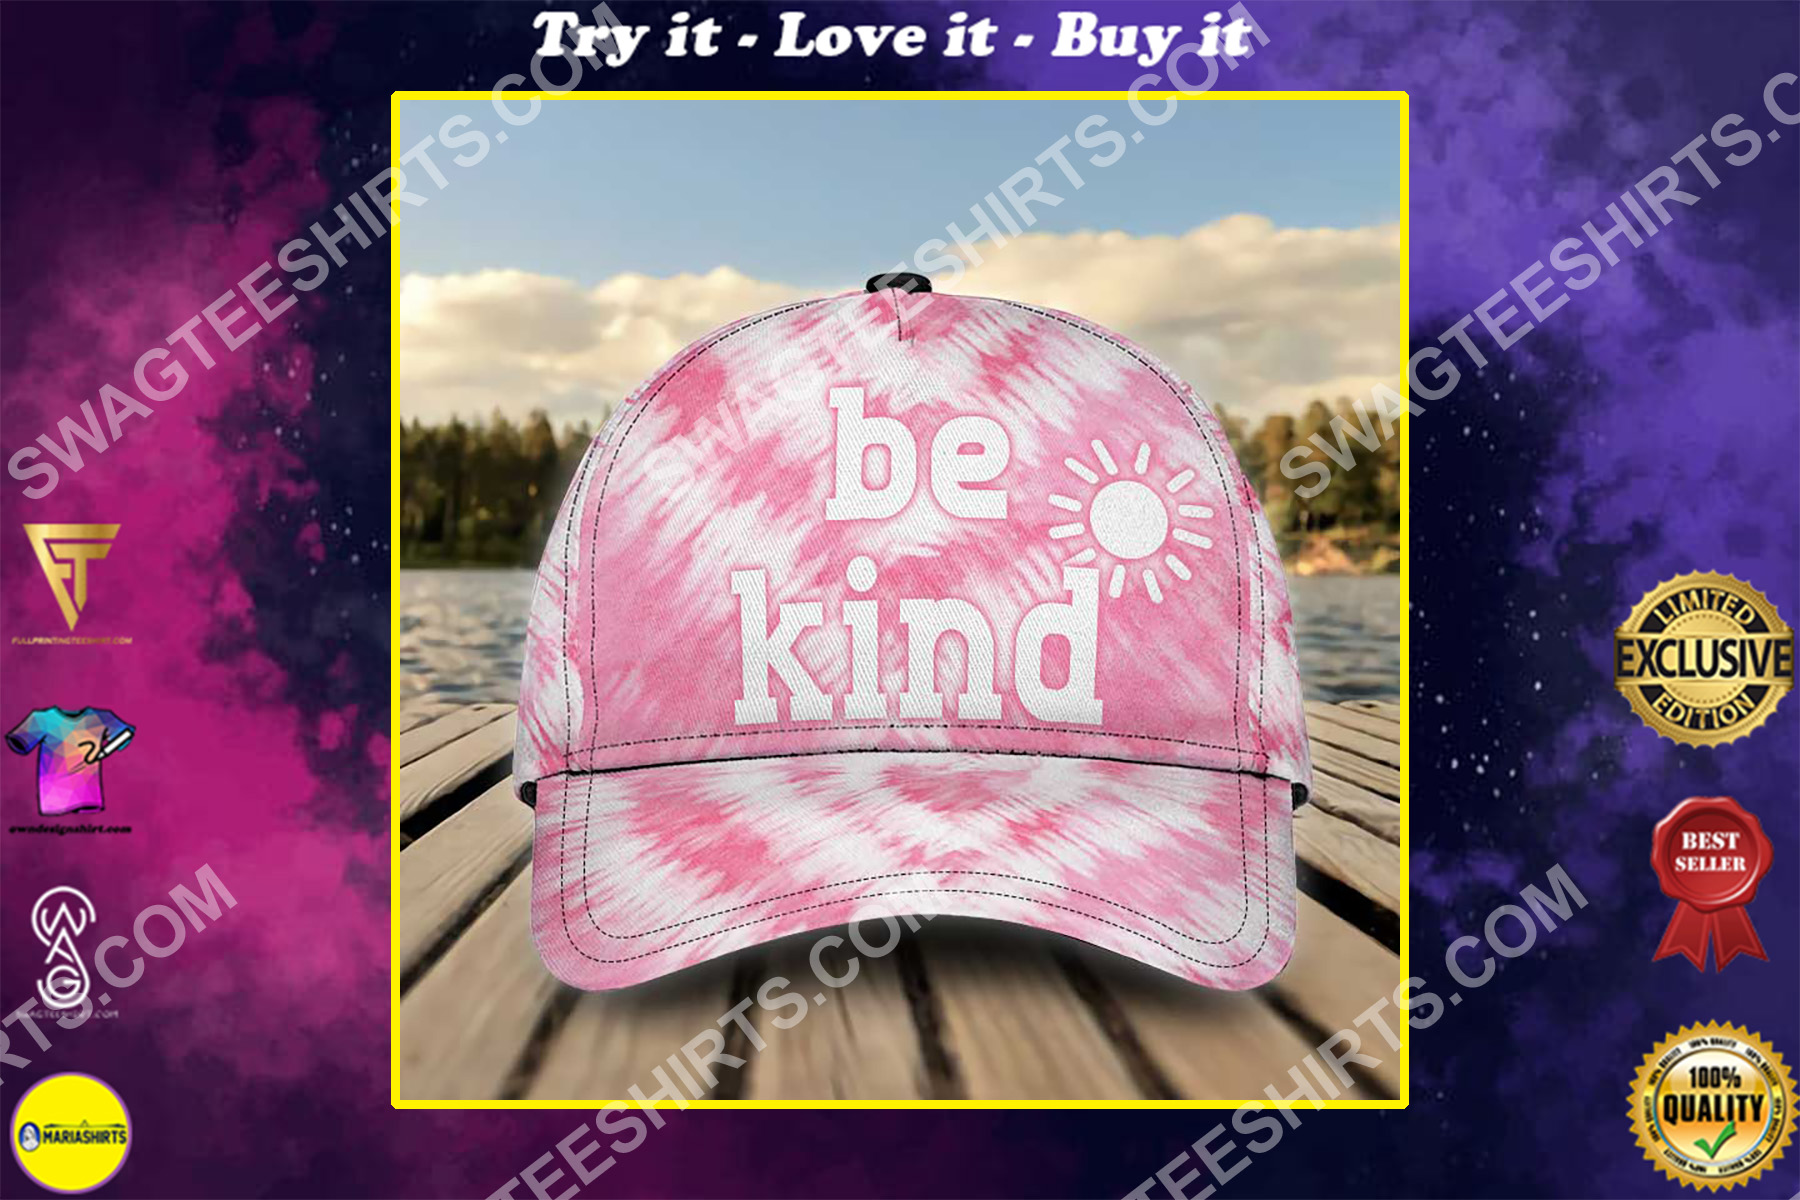 be kind tie-dye colorful all over printed classic cap